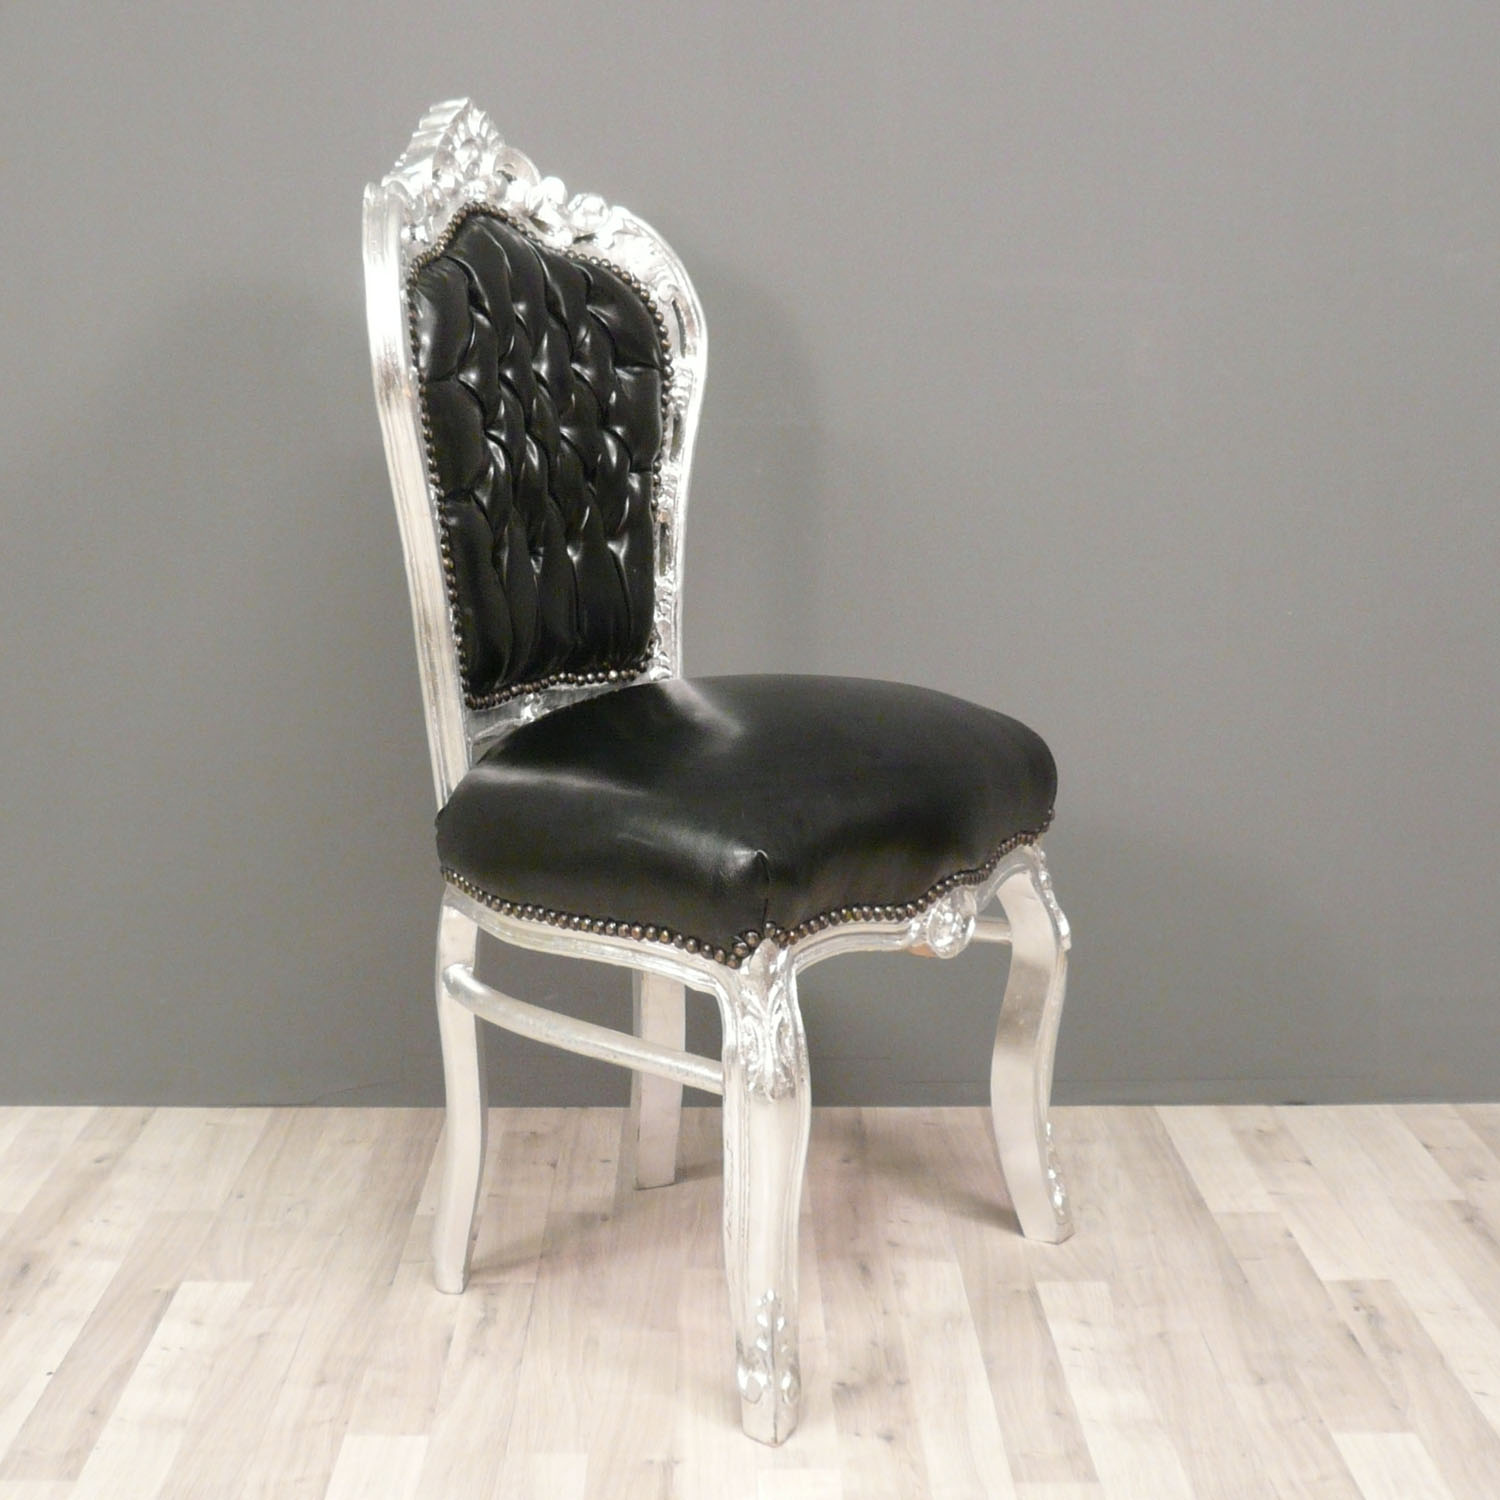 Silver Chairs Baroque Black And Silver Chair In Pvc Fabric Armchairs